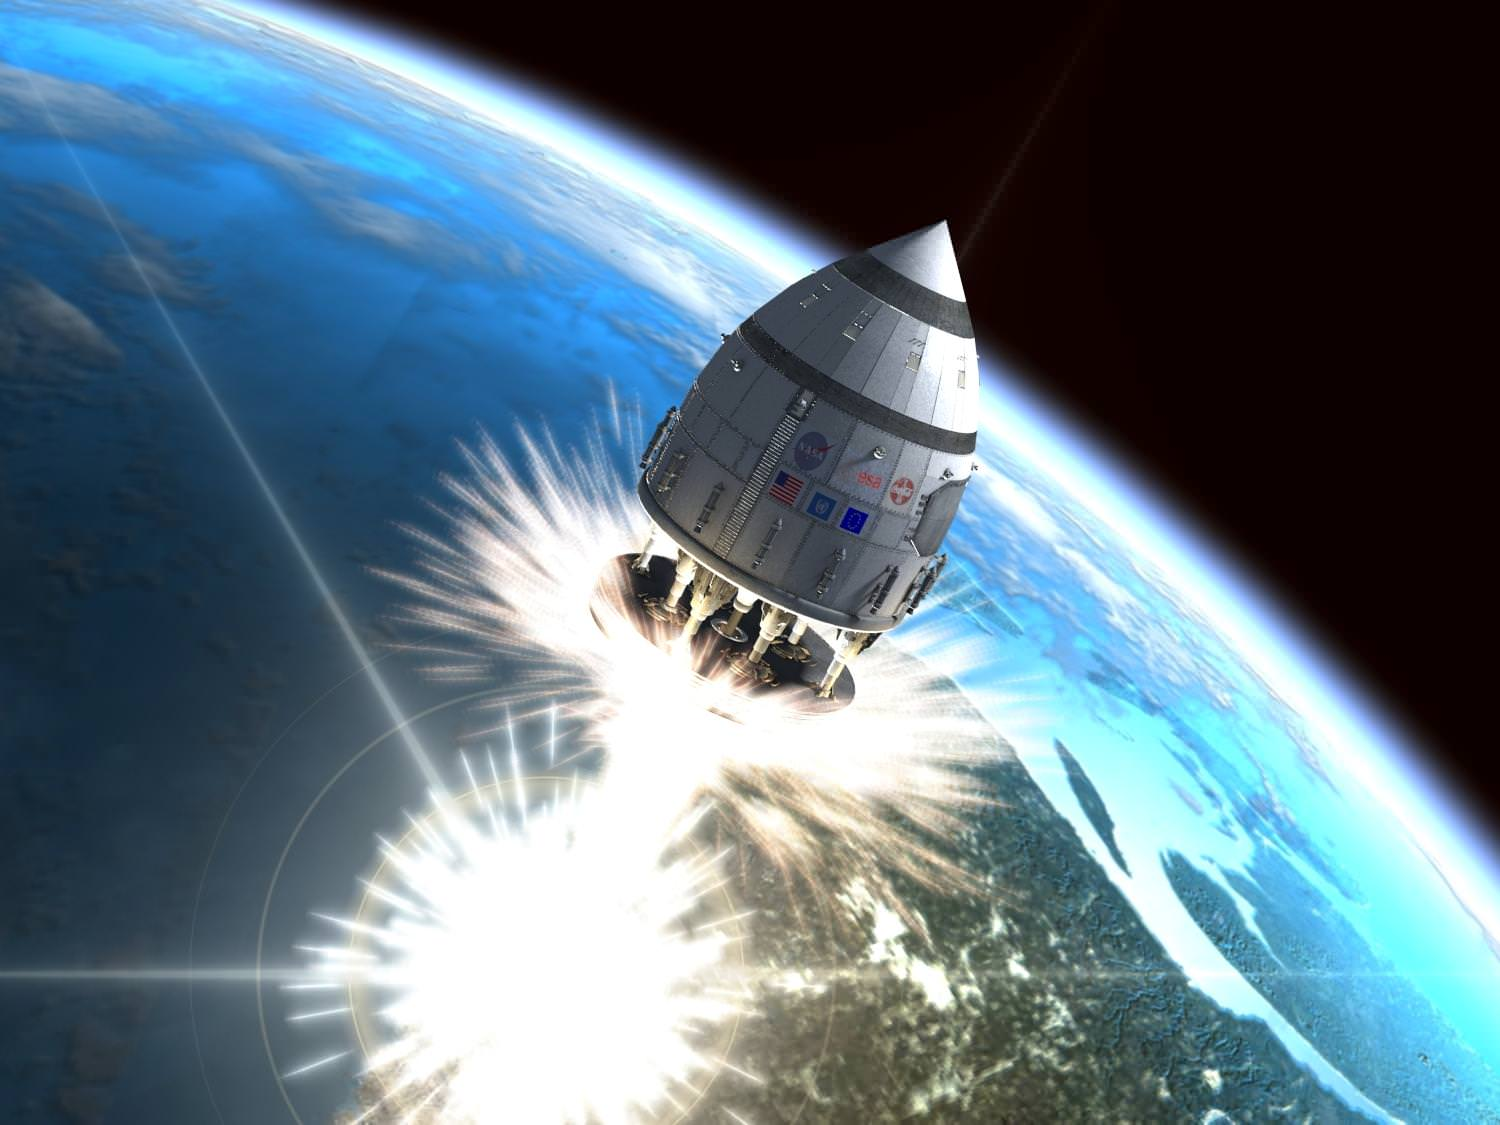 Retro Rockets: Nuclear Explosion-Powered Spaceships Of The